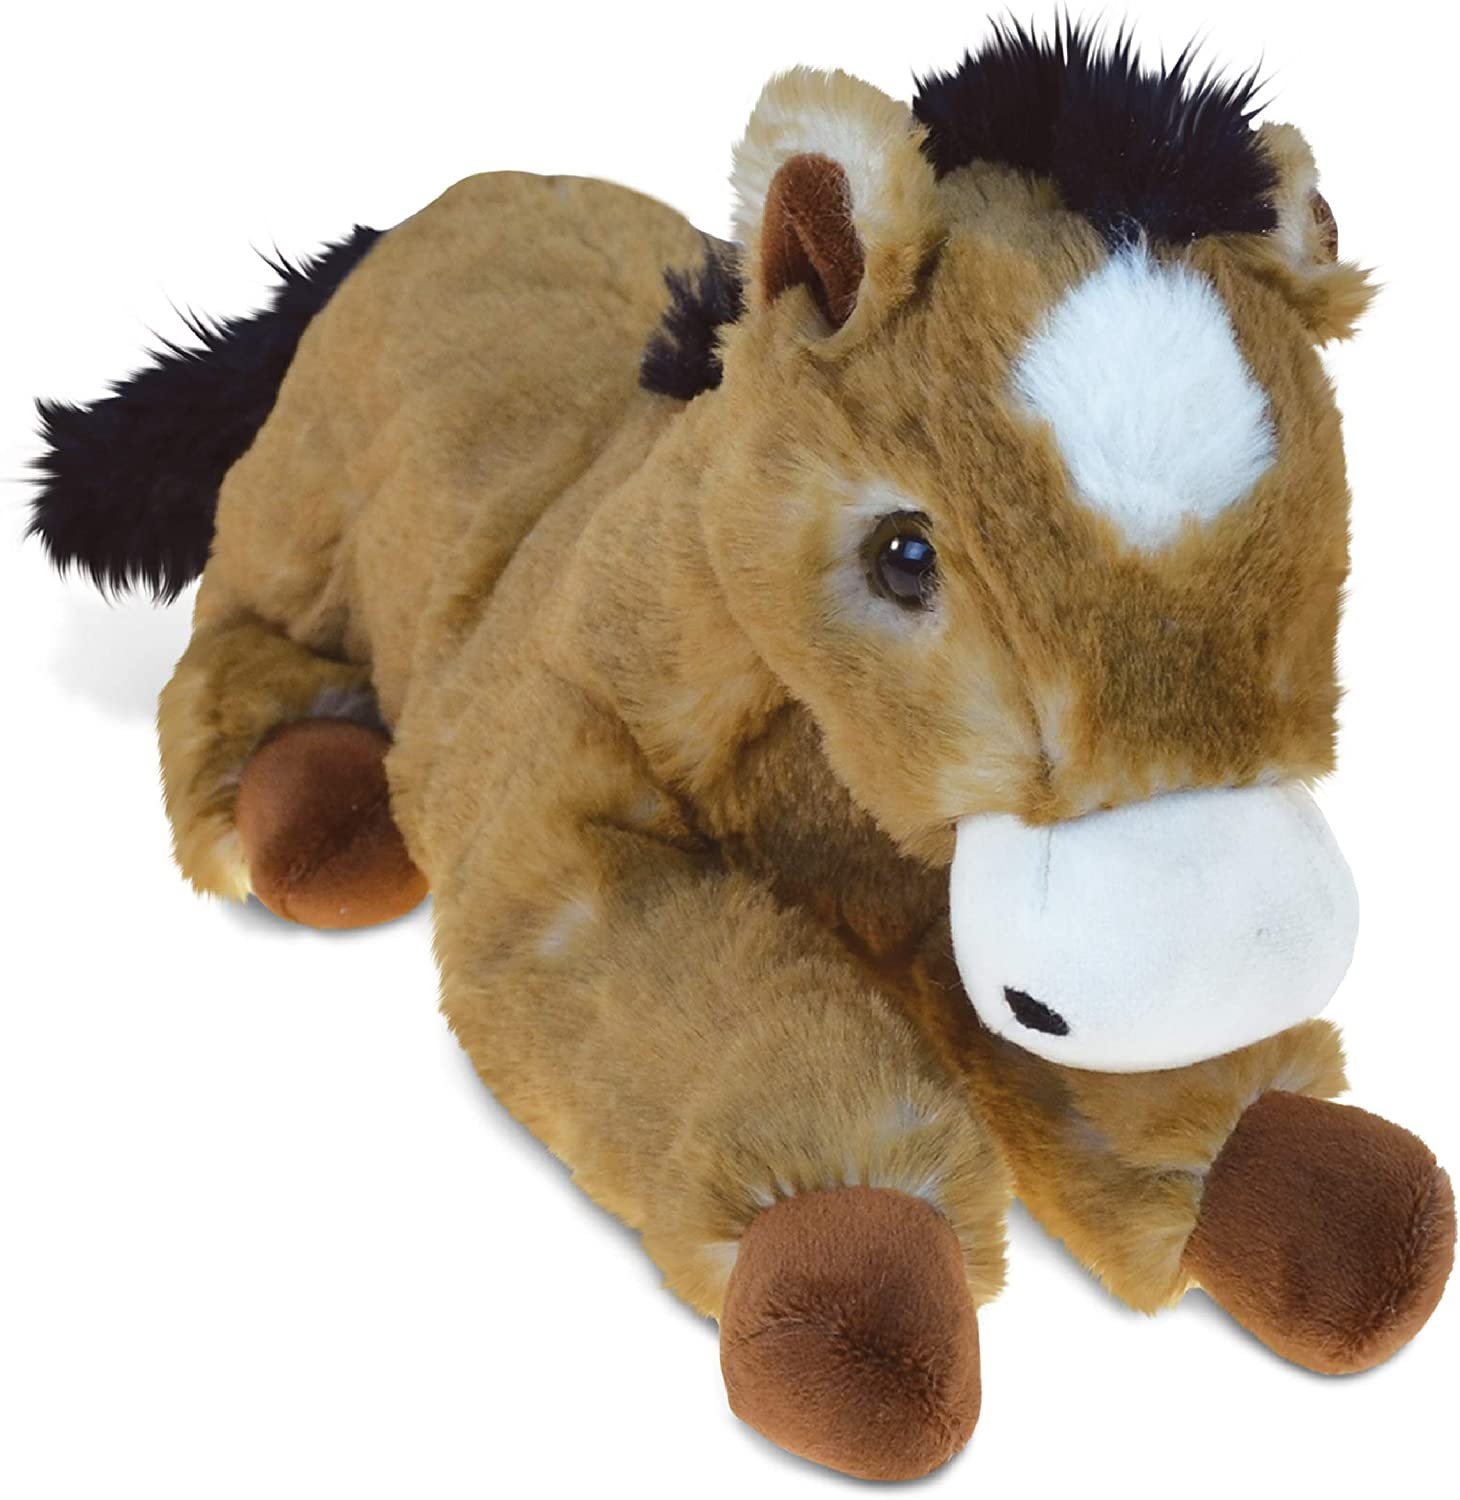 Plushland 14 Inches Soft Brown and Black Horse Stuffed Animal Toy Gift for Baby